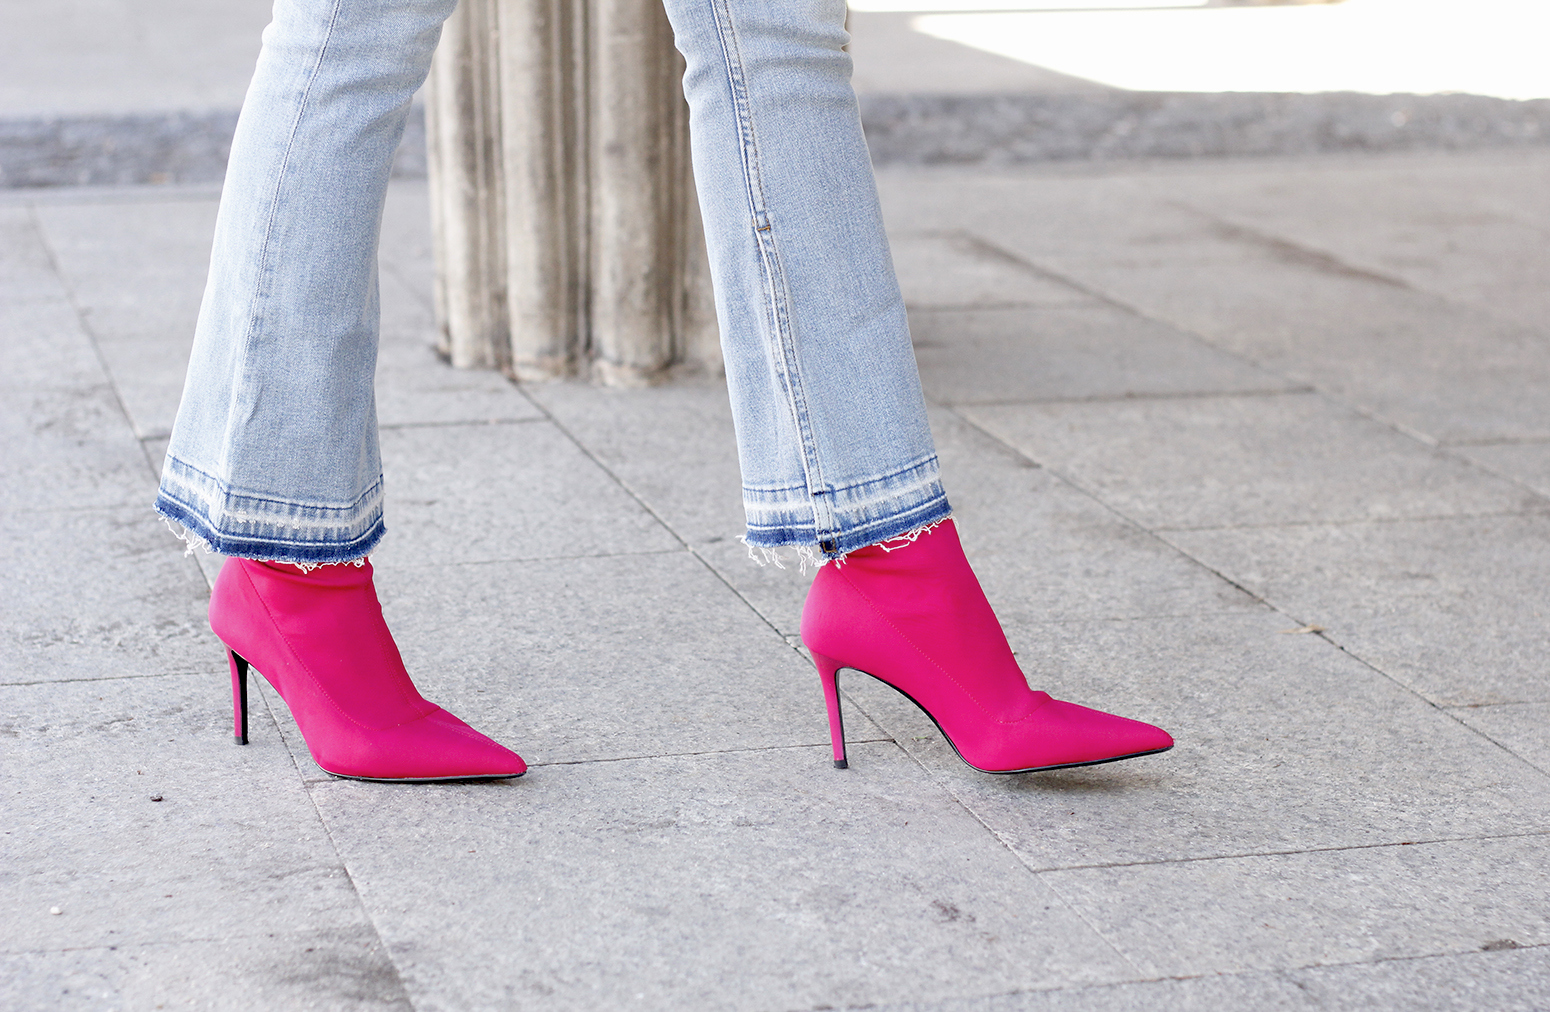 fucsia ankle boots flared jeans suede chaquet uterqüe white shirt outfit trend fashion15